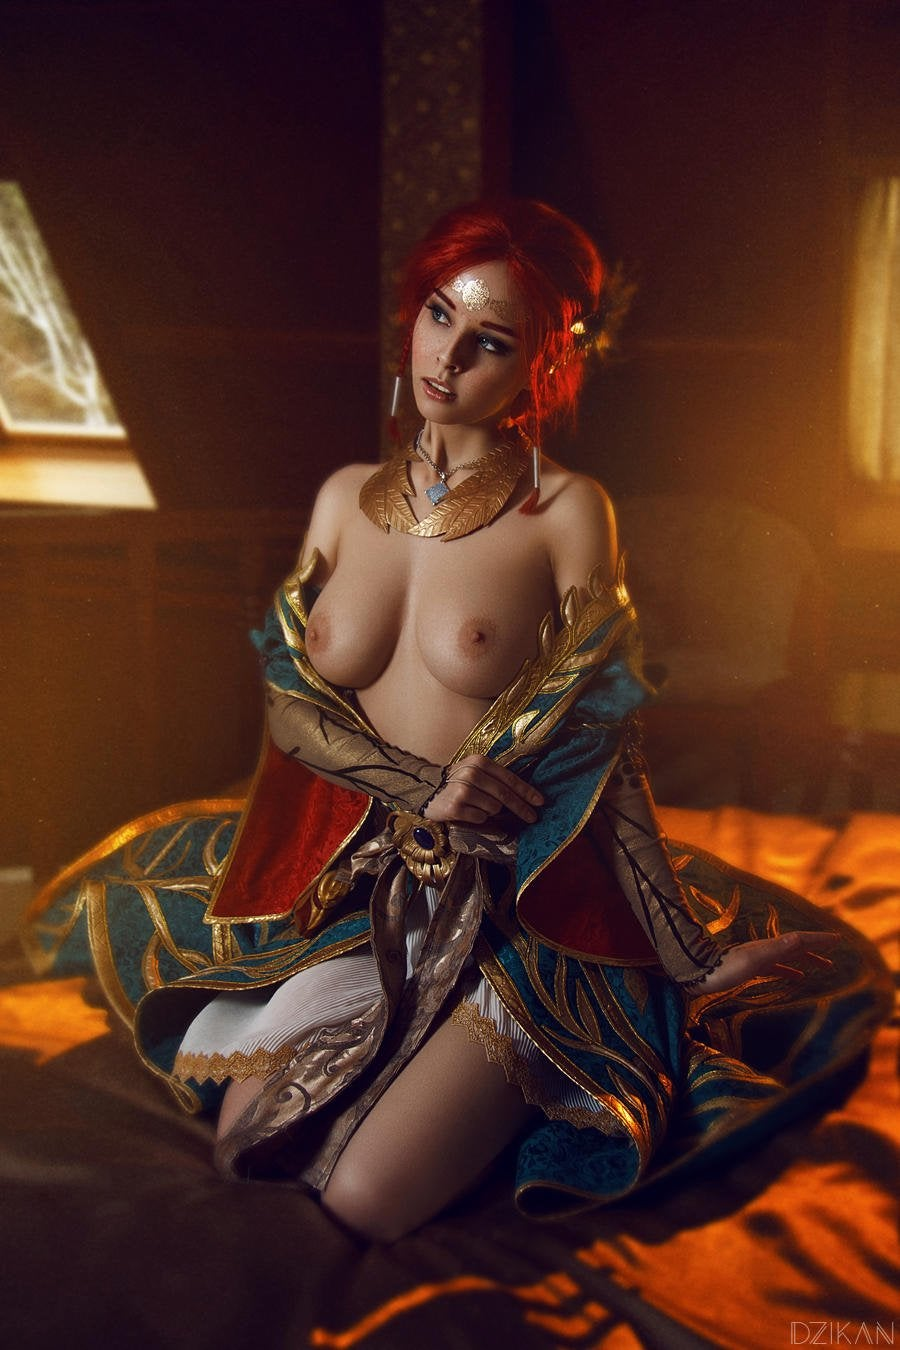 Topless cosplay